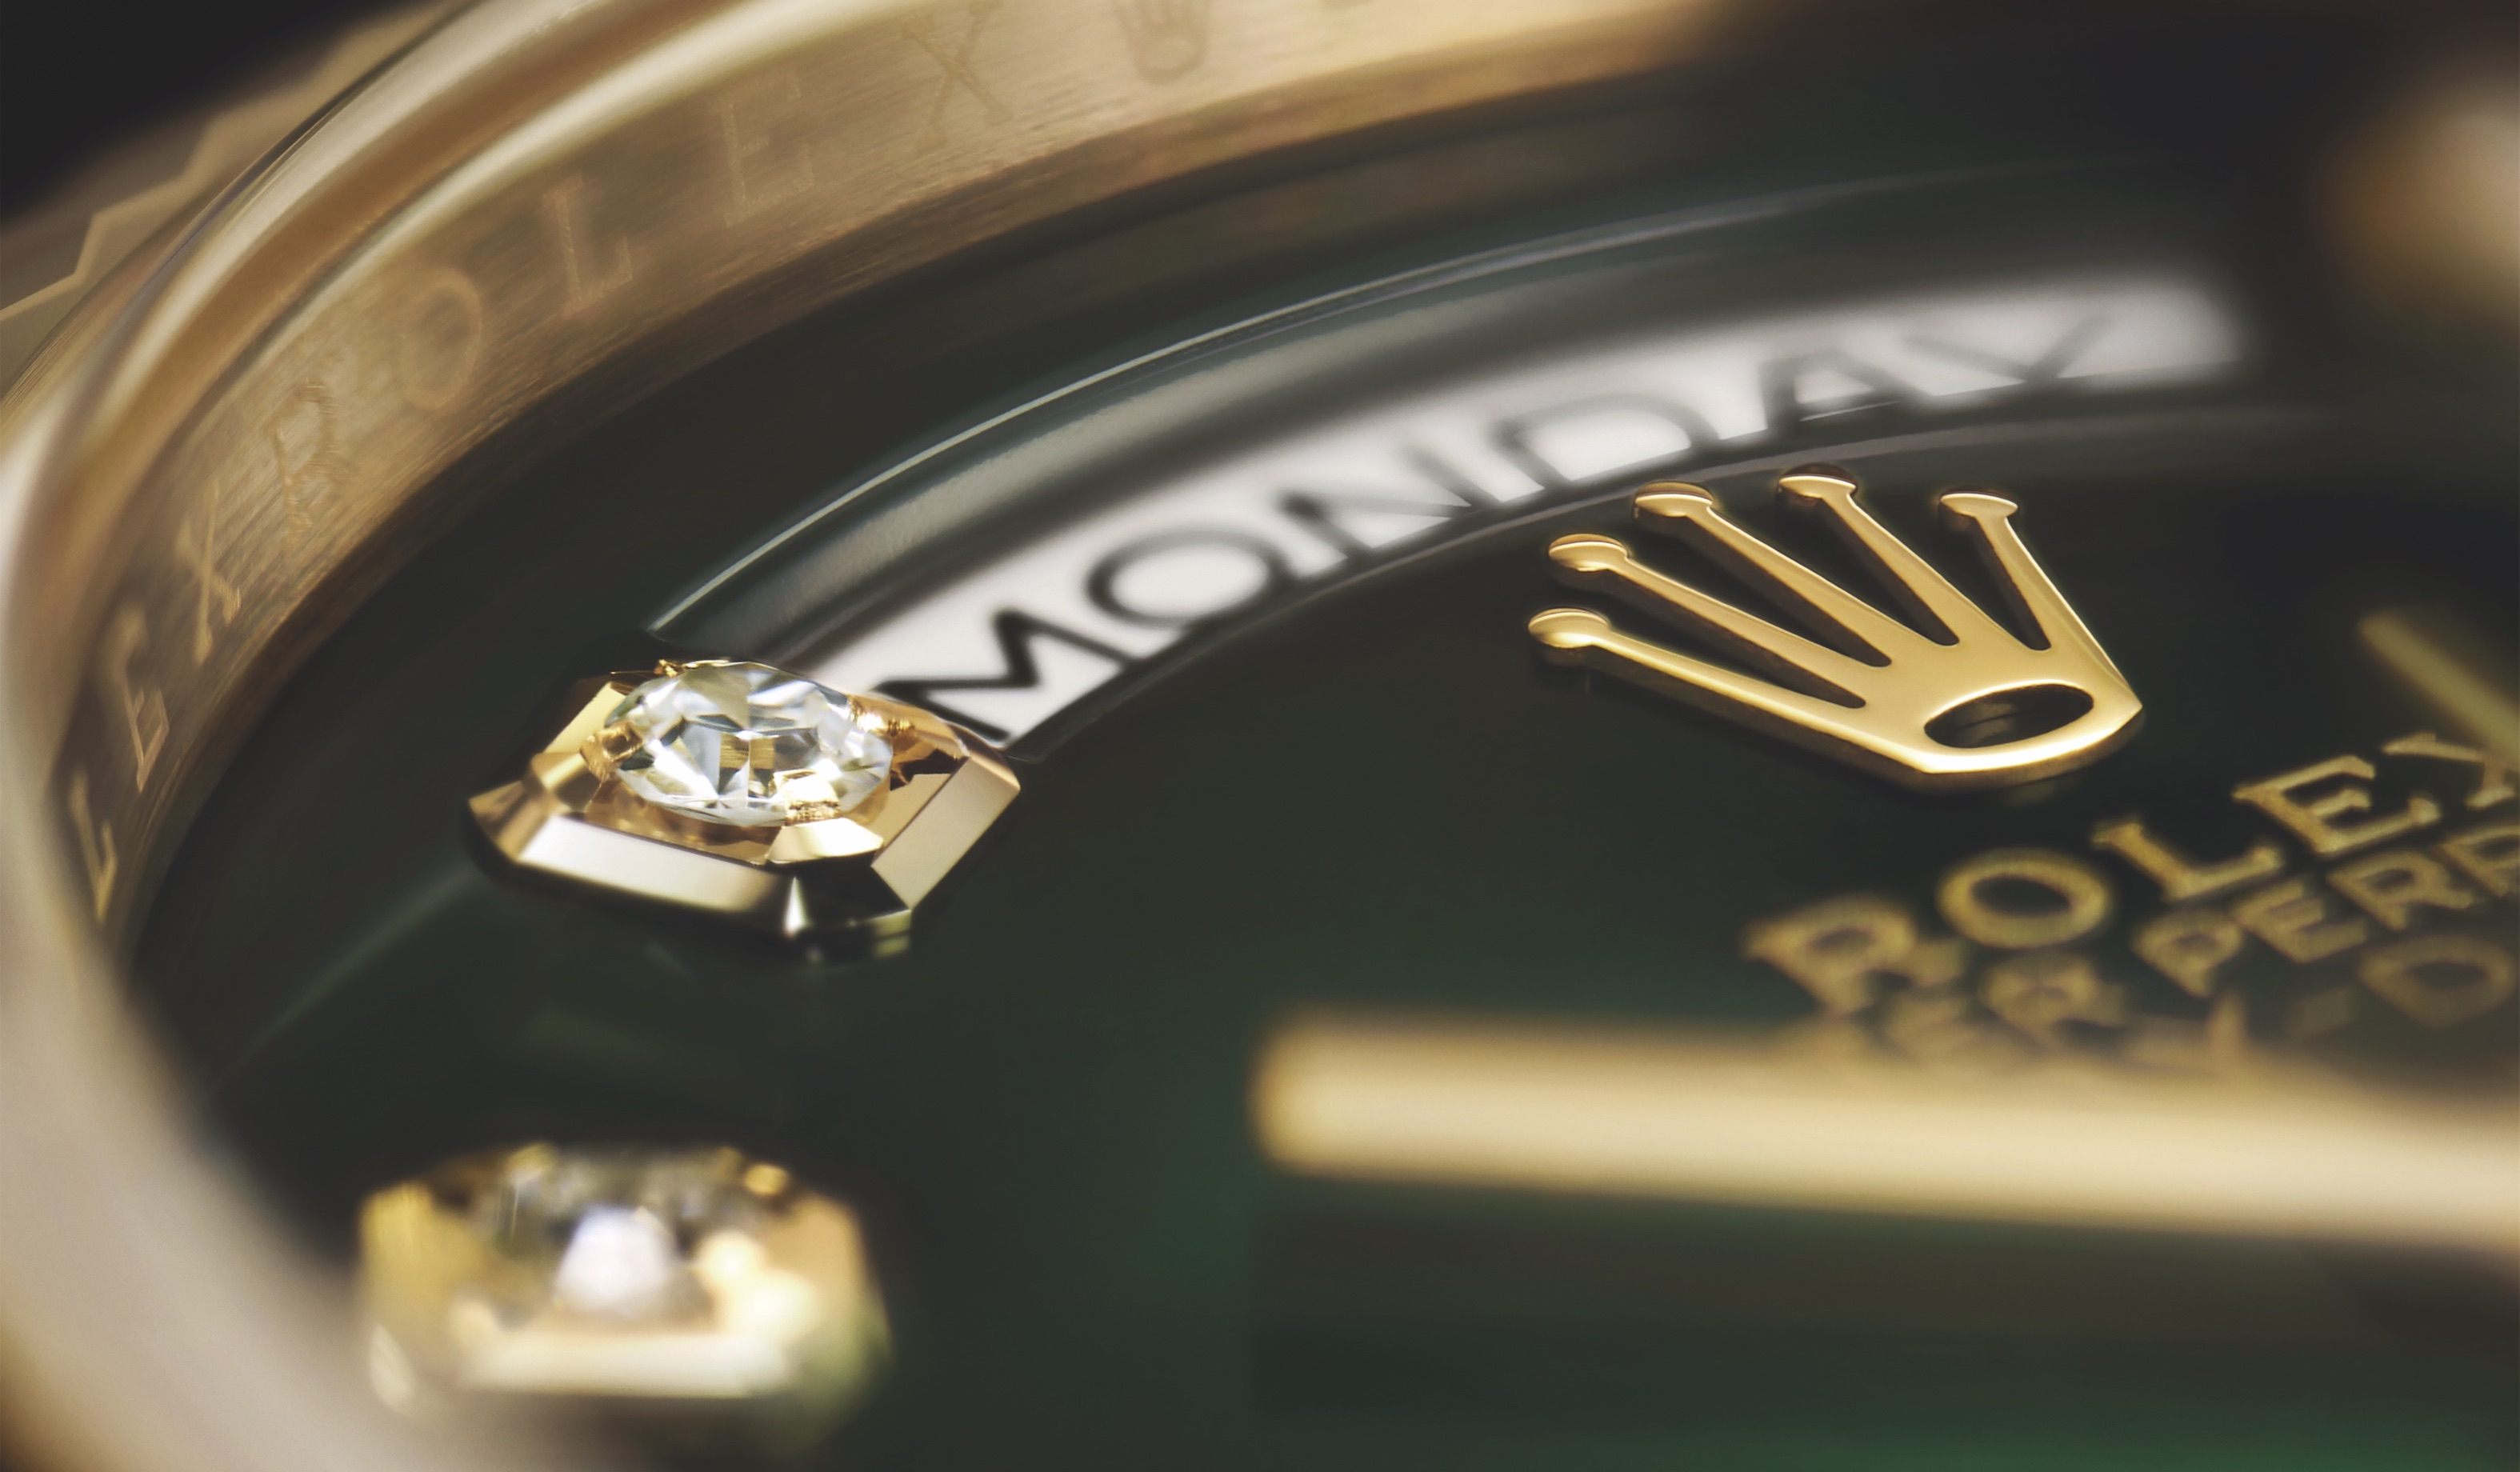 The Rolex Oyster Perpetual Day-Date 36 gets a bold update